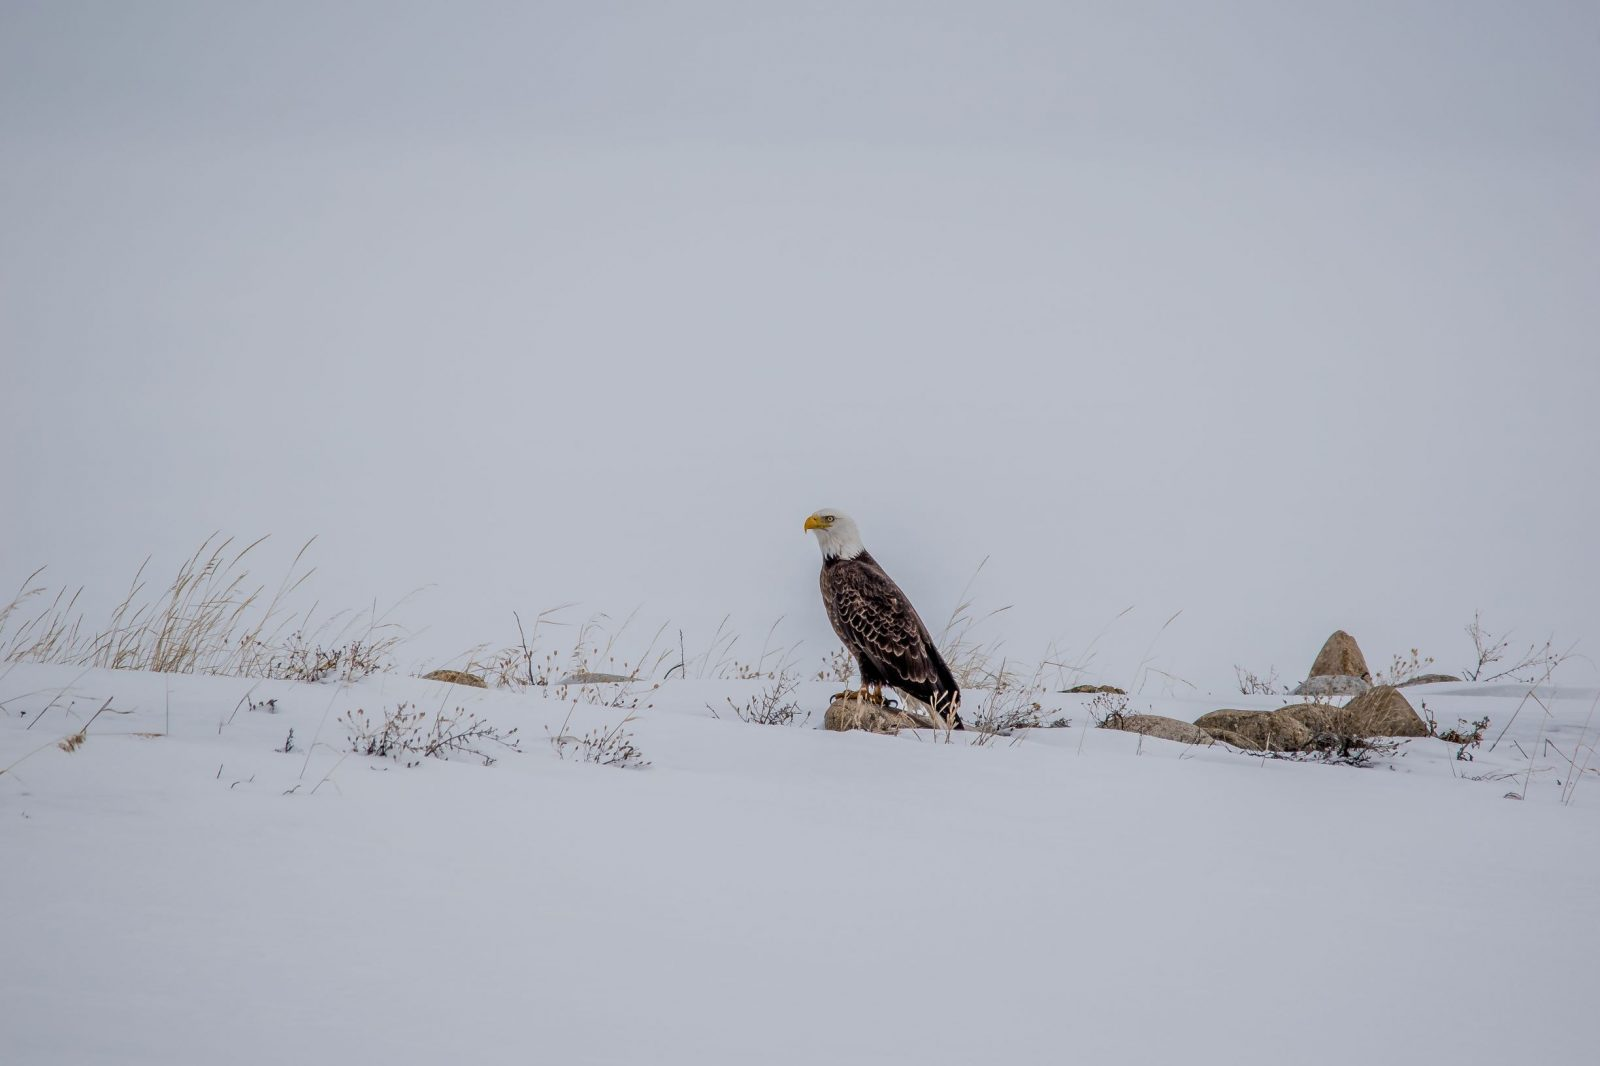 Winterscape with American Bald Eagle on a rock